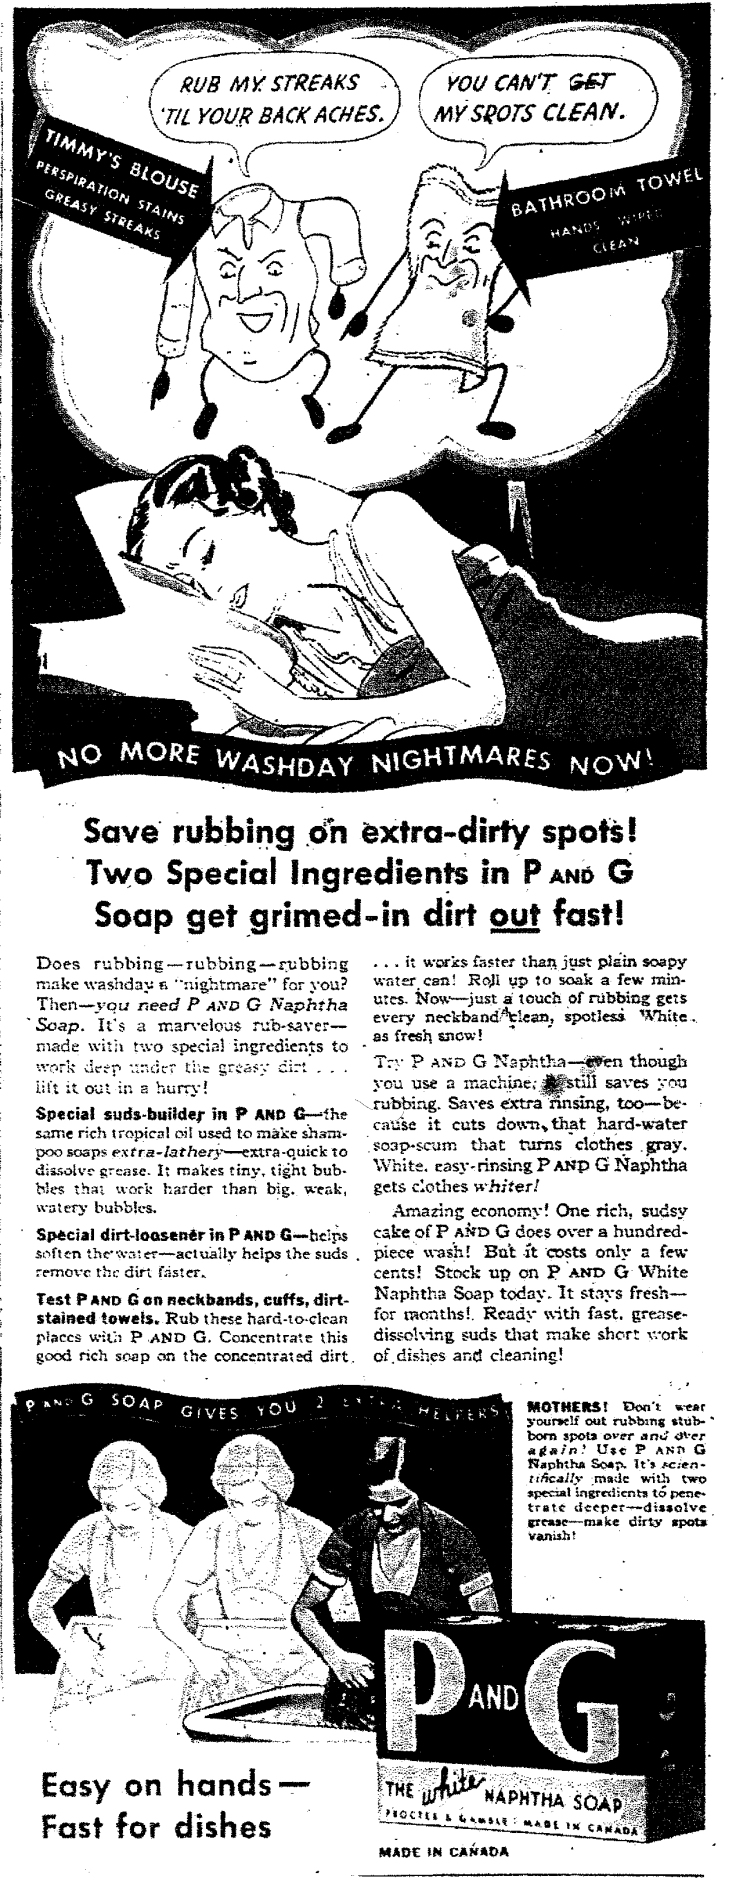 P and G soap ad, 1936, Chatelaine magazine.